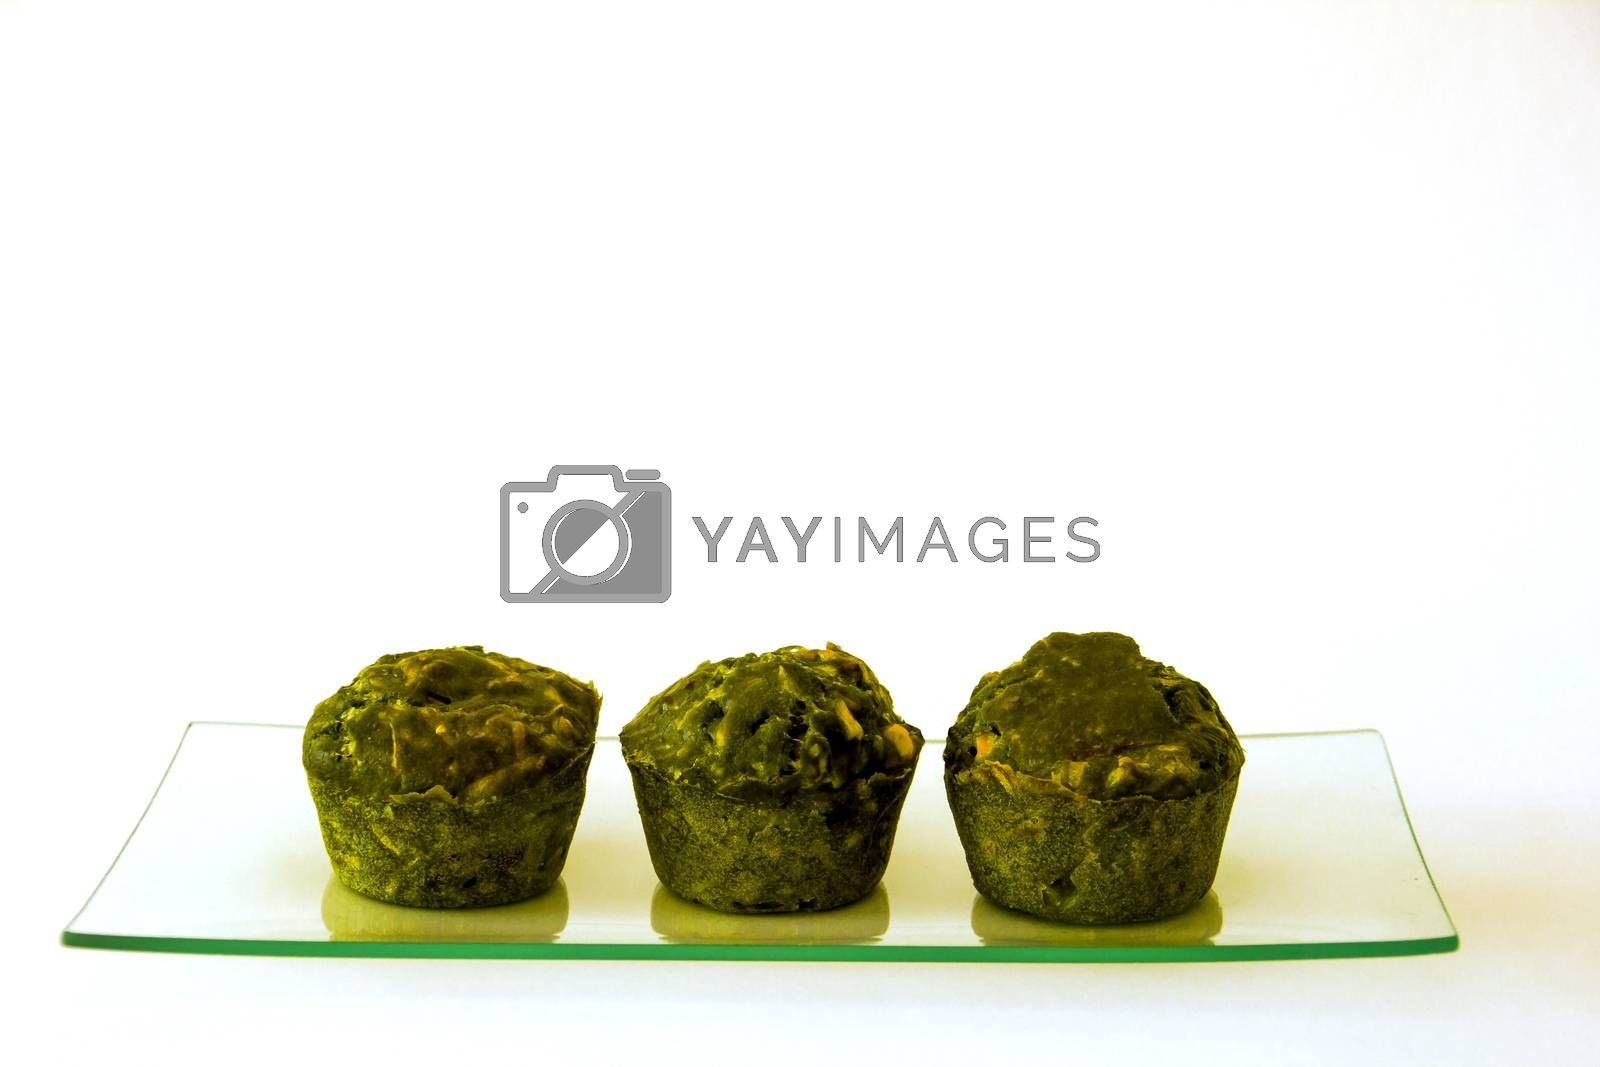 Green muffins on a glass tray with white background